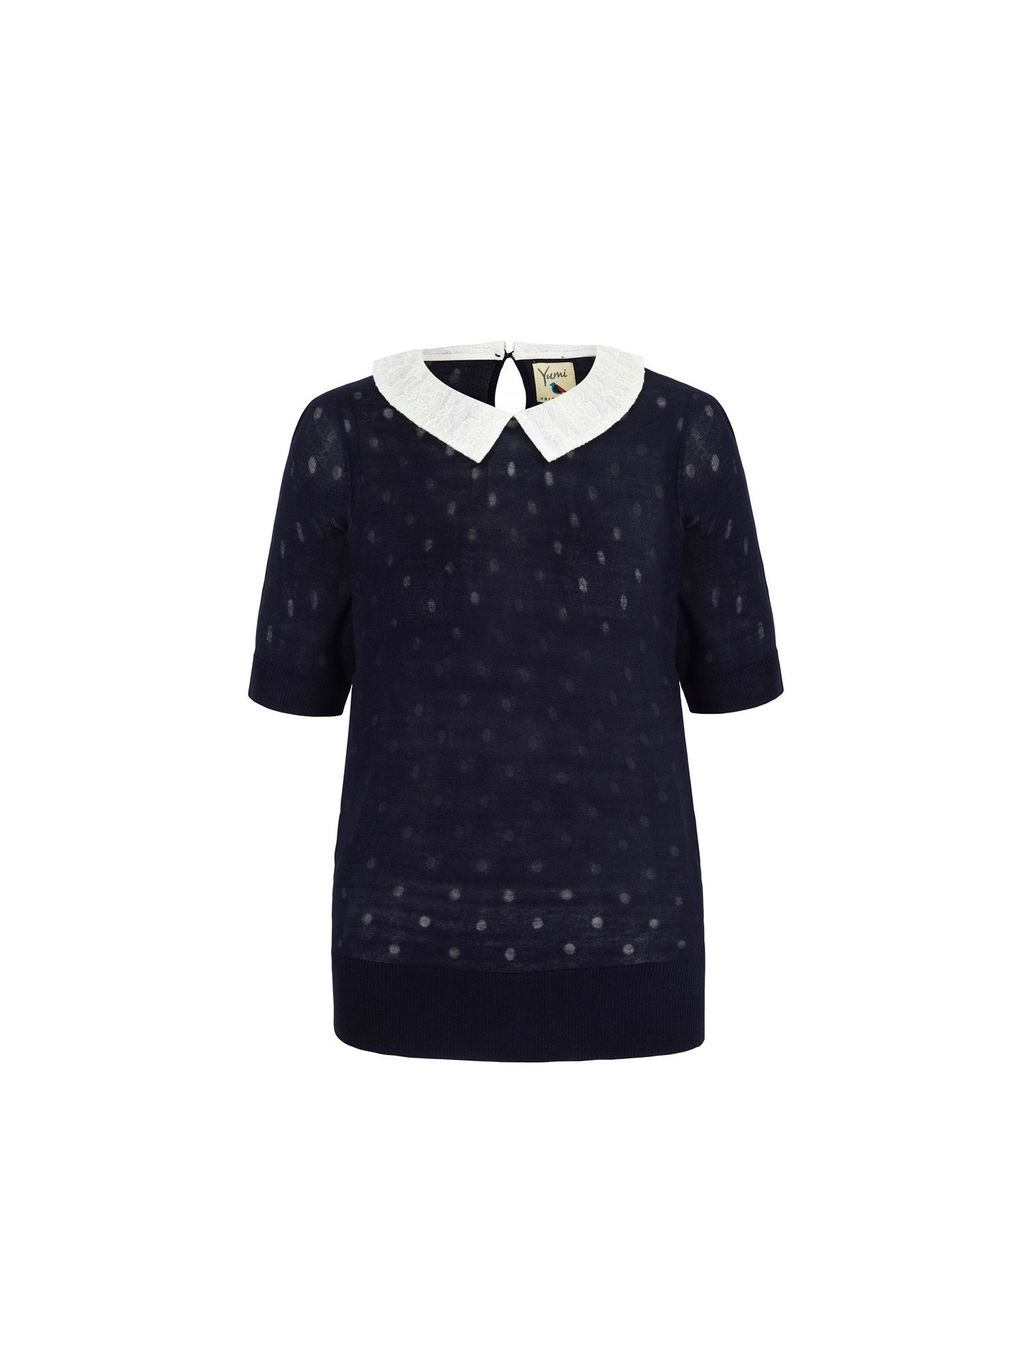 Polka Dot Collar Jumper, Navy - pattern: plain; style: standard; secondary colour: white; predominant colour: navy; occasions: casual, creative work; length: standard; fit: standard fit; neckline: no opening/shirt collar/peter pan; back detail: keyhole/peephole detail at back; sleeve length: short sleeve; sleeve style: standard; texture group: knits/crochet; pattern type: knitted - fine stitch; fibres: viscose/rayon - mix; season: s/s 2016; wardrobe: basic